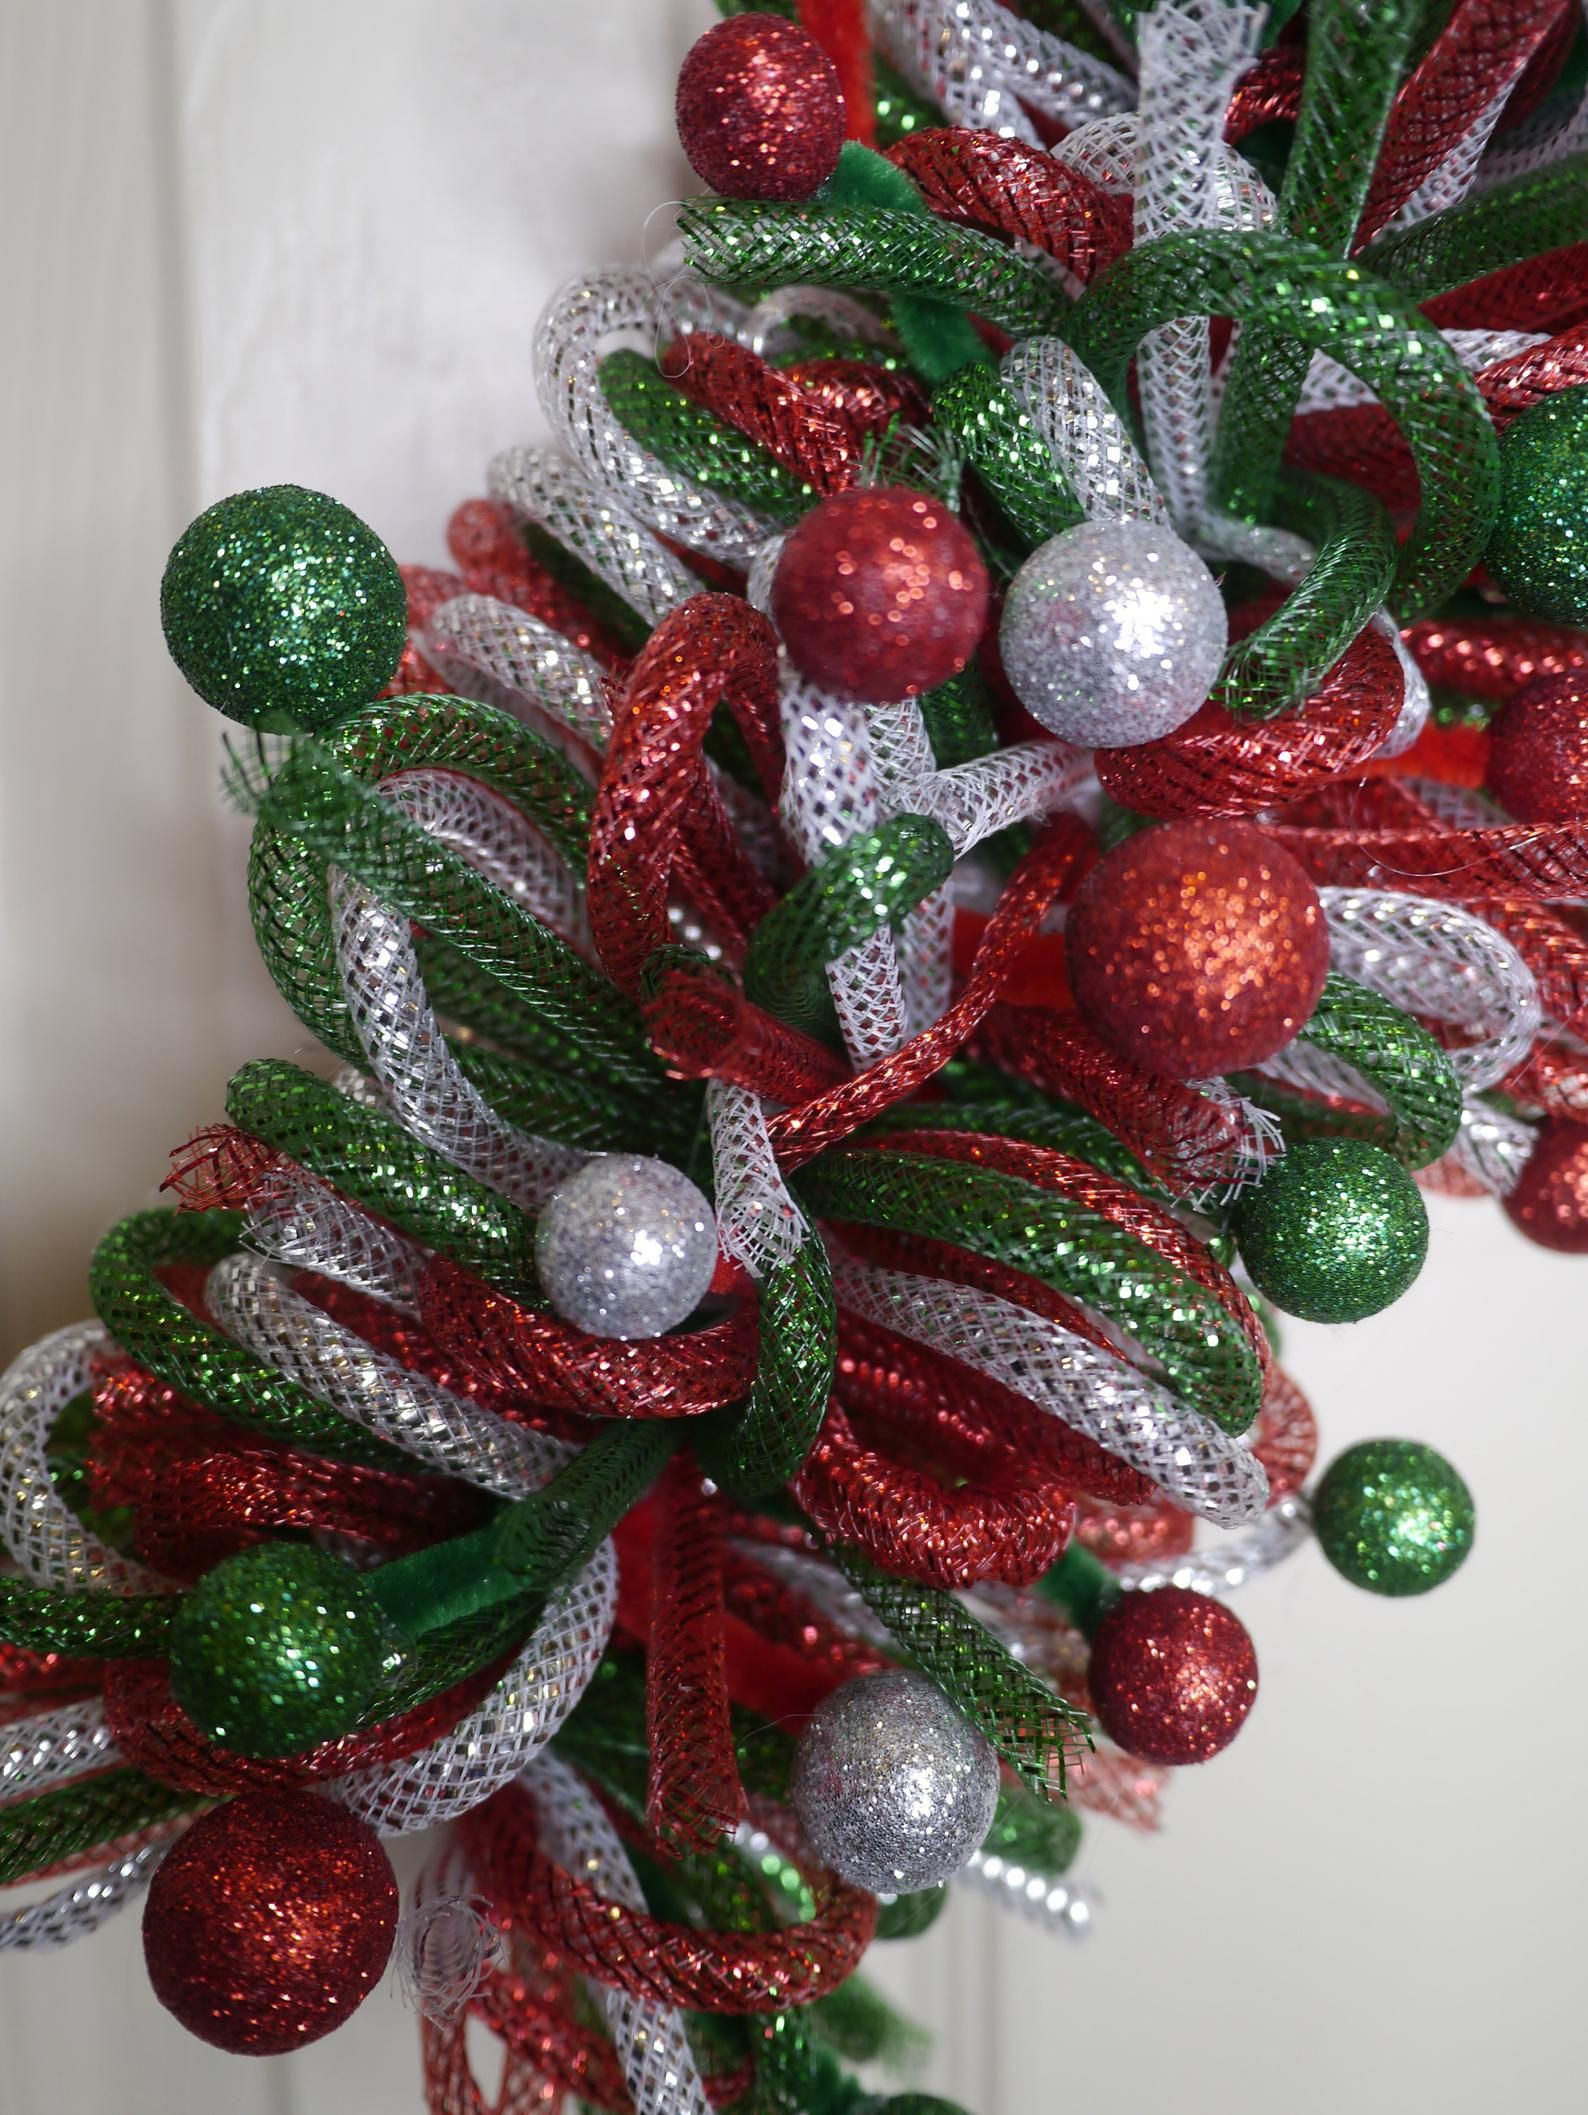 Christmas Wreath, Candy Cane, Candy Cane Christmas Wreath, Candy Cane Decor, Front Door Wreath, Holiday Wreath, FREE Shipping, Mesh Tubing #walkwaystofrontdoor